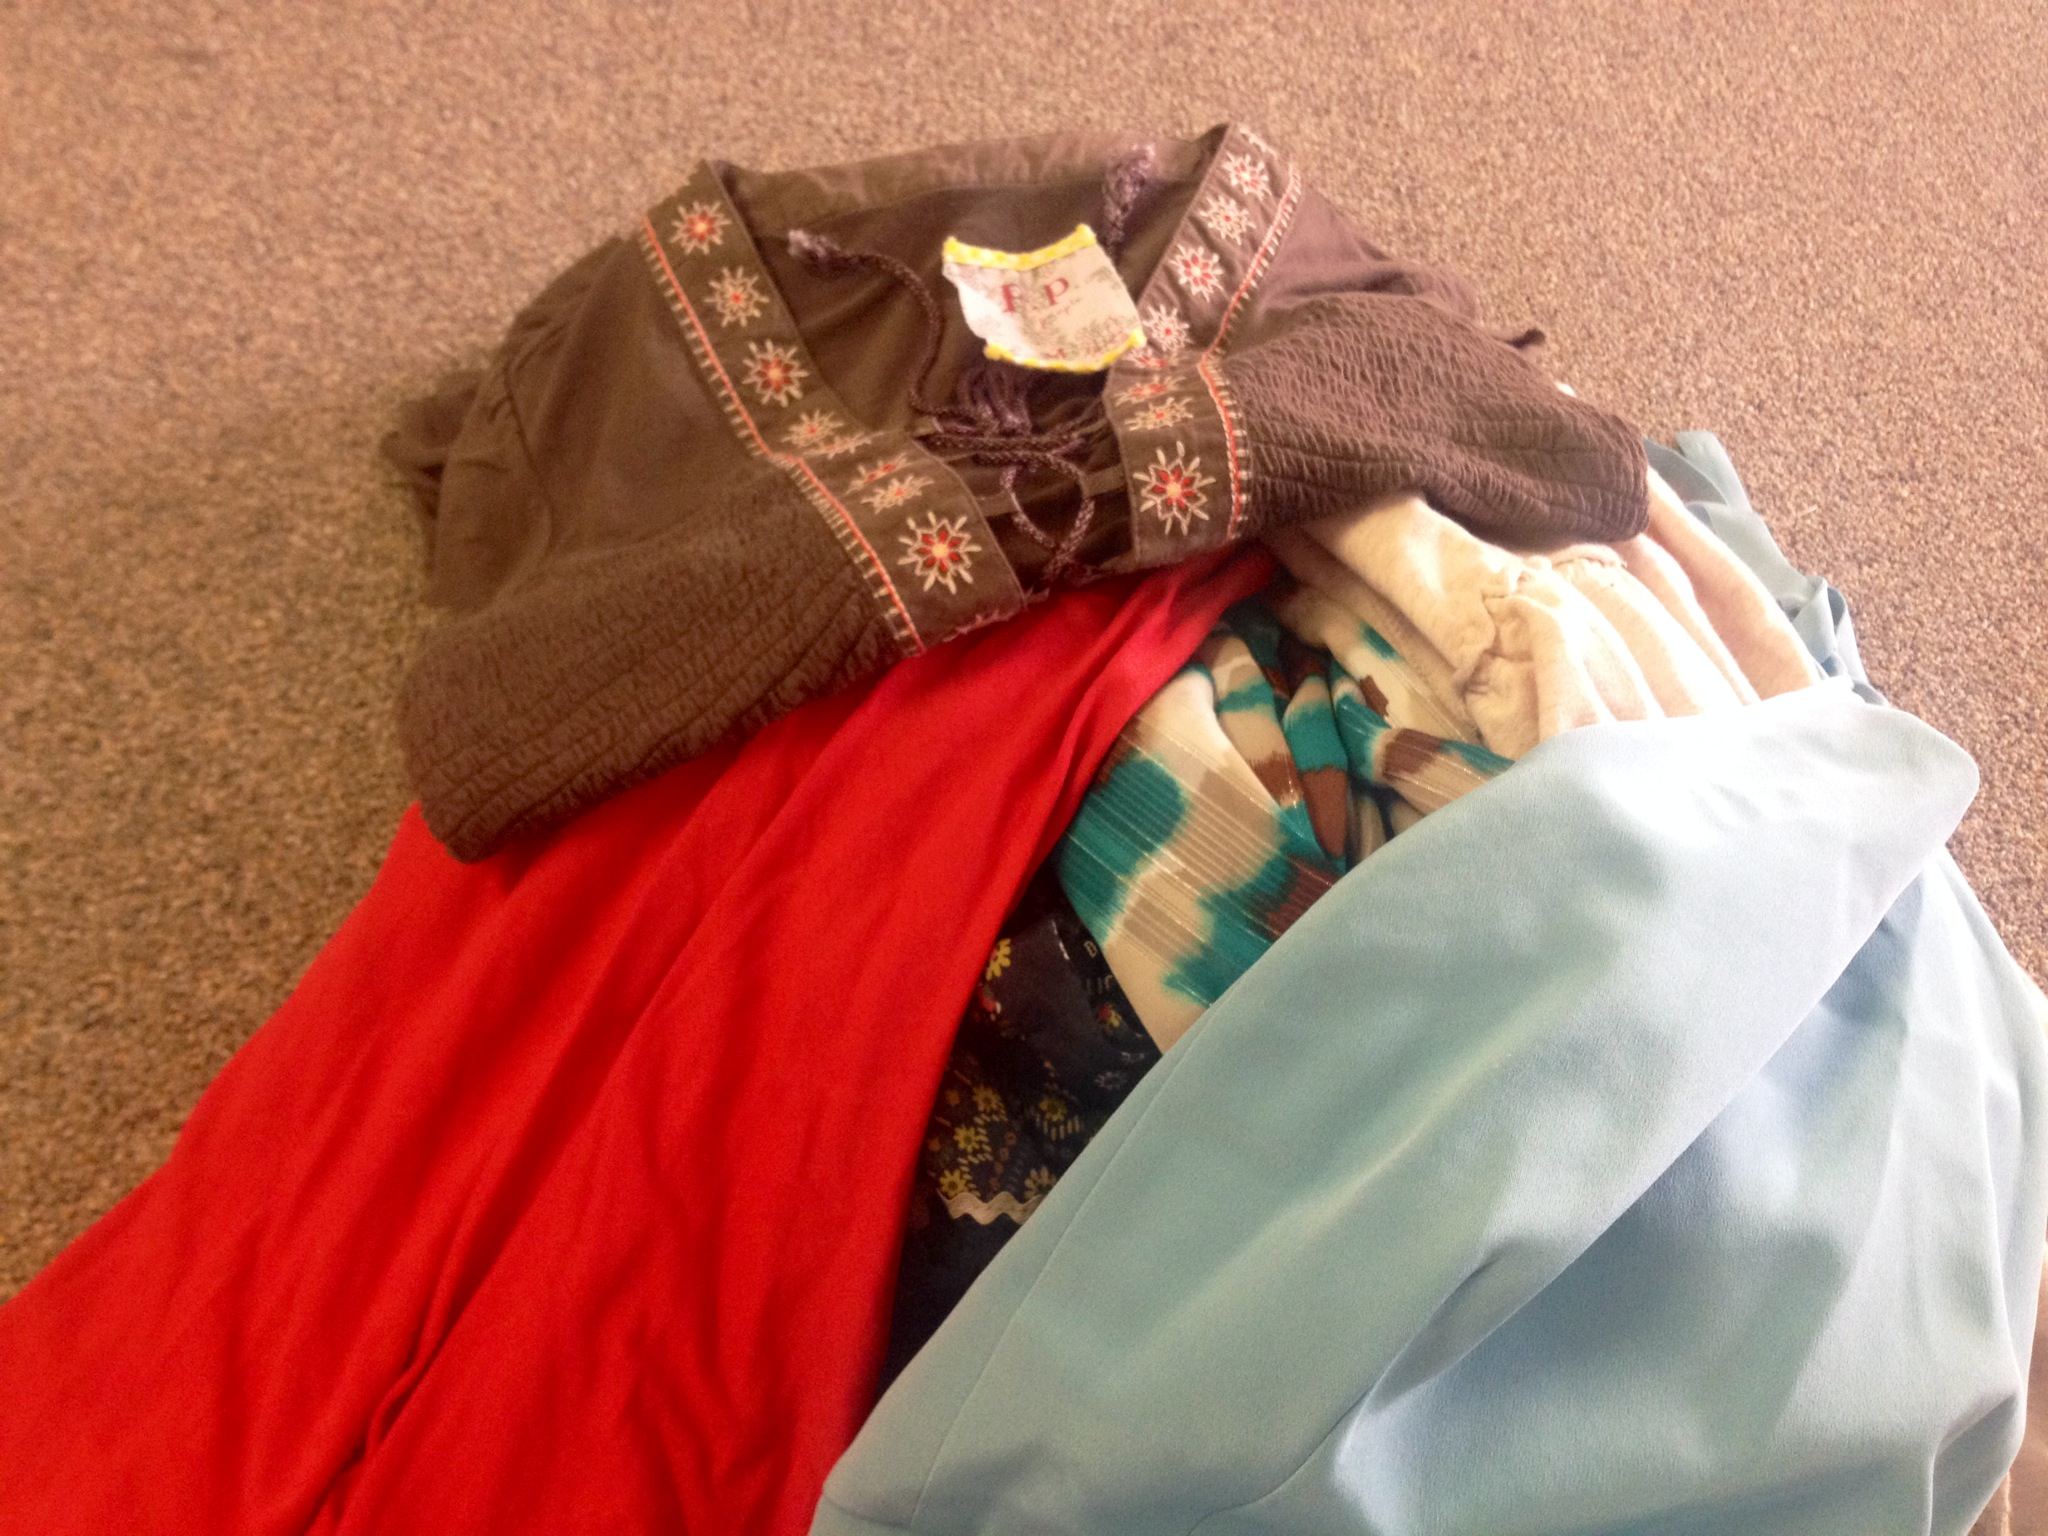 Gently-used clothes that need a new home